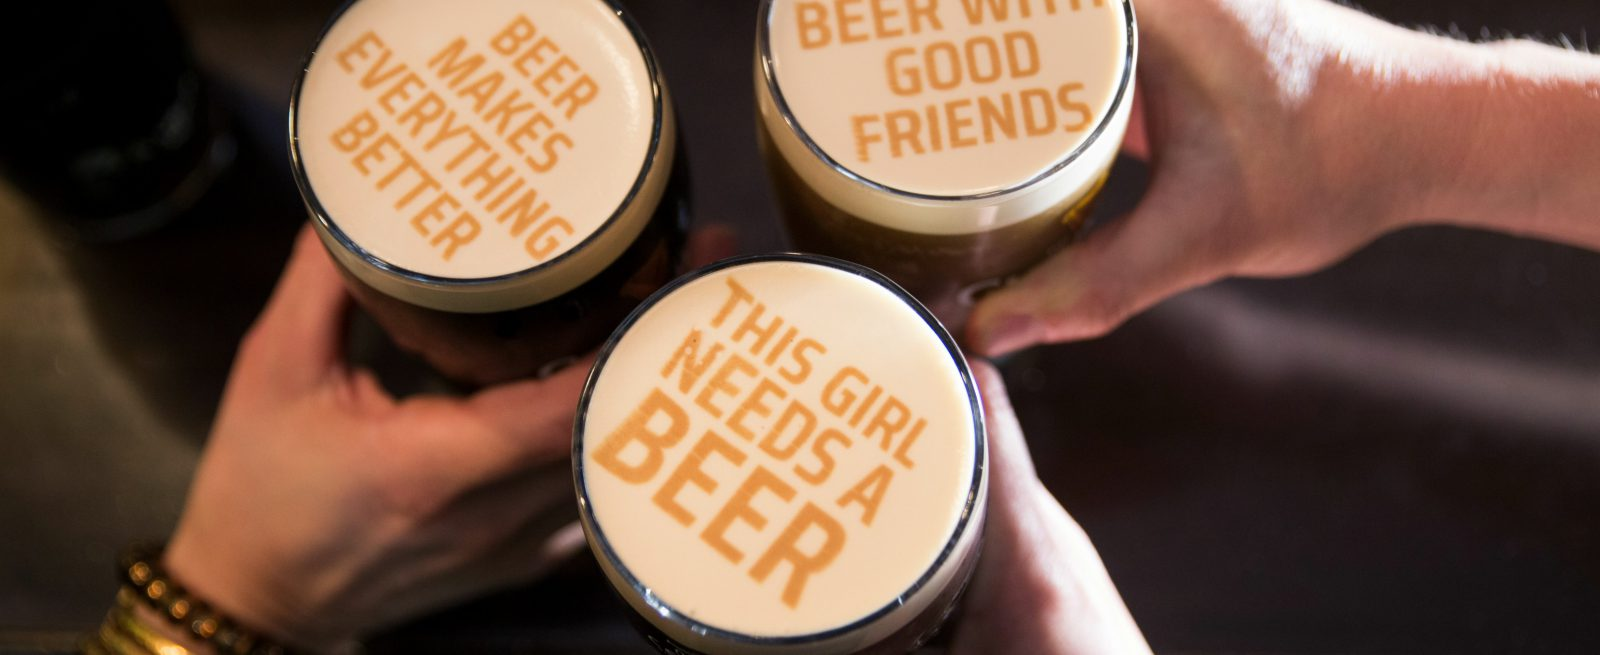 New & Notable: Beer Ripples, Cheesy Shampoo, FroYo Robot and